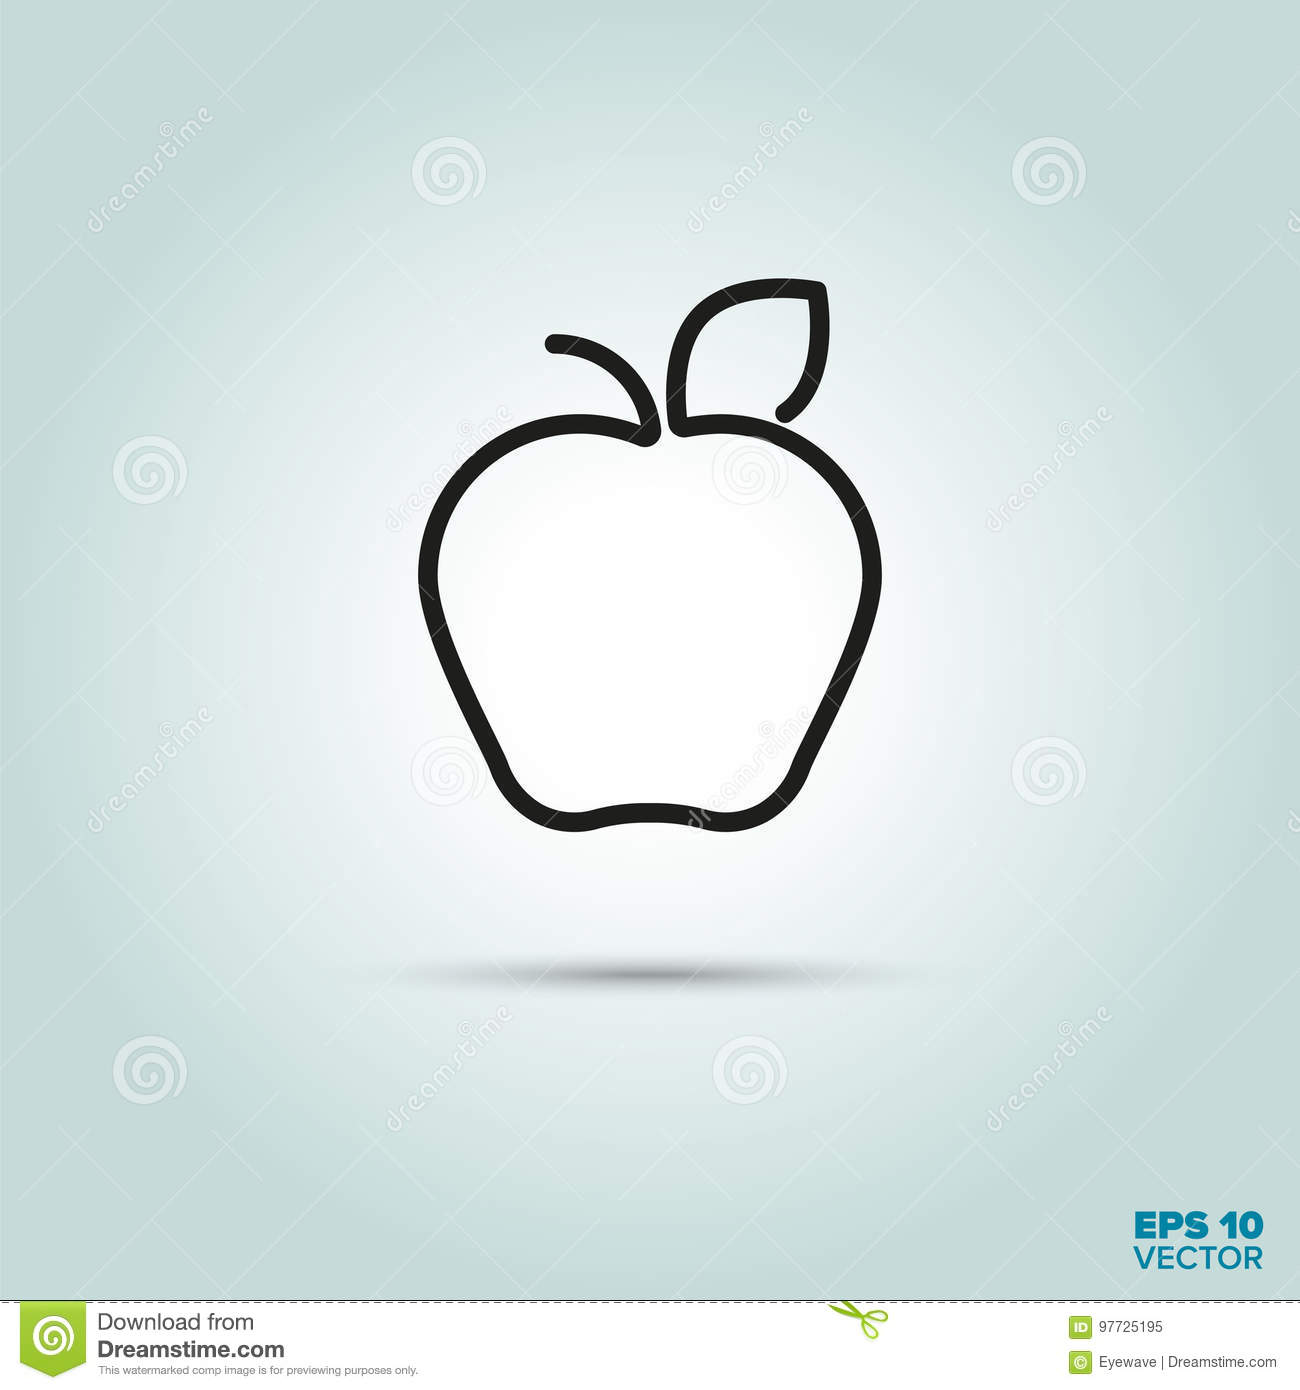 Apple allinea l icona